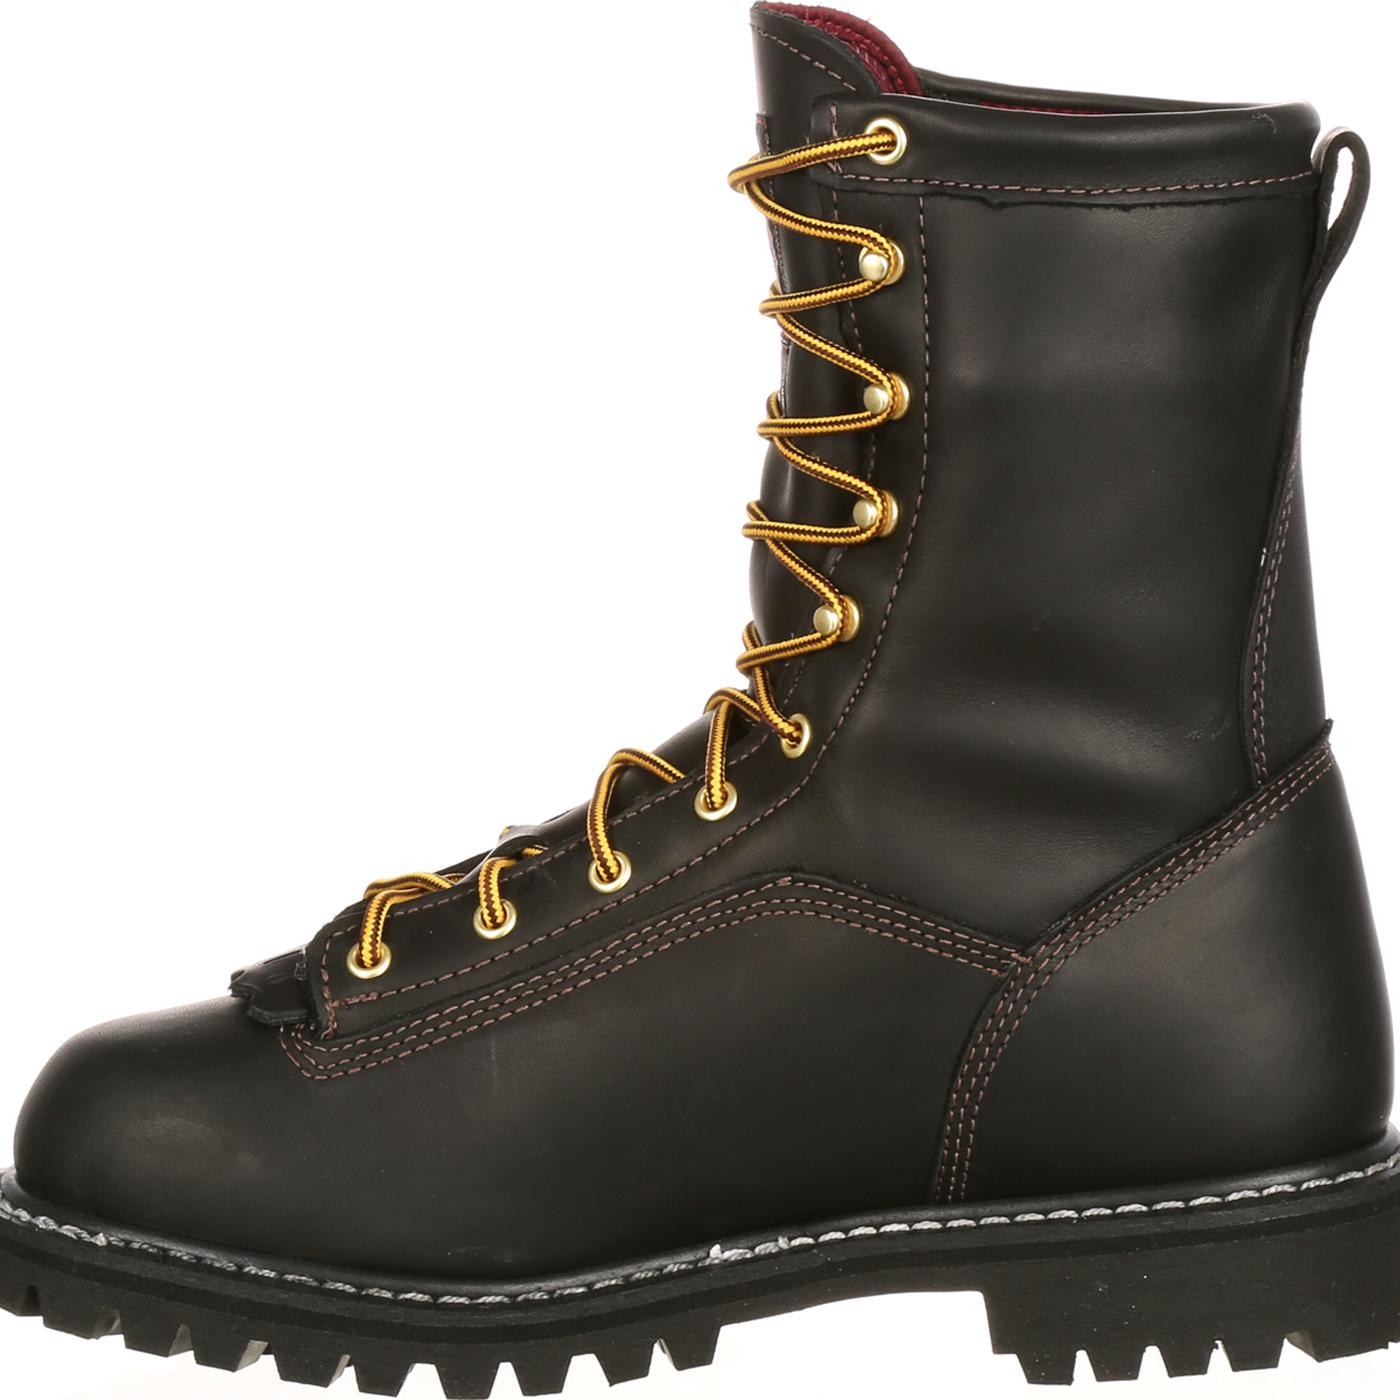 c4a7d4c7cc5 Georgia Boot Lace-to-Toe GORE-TEX® Waterproof Insulated Work Boot